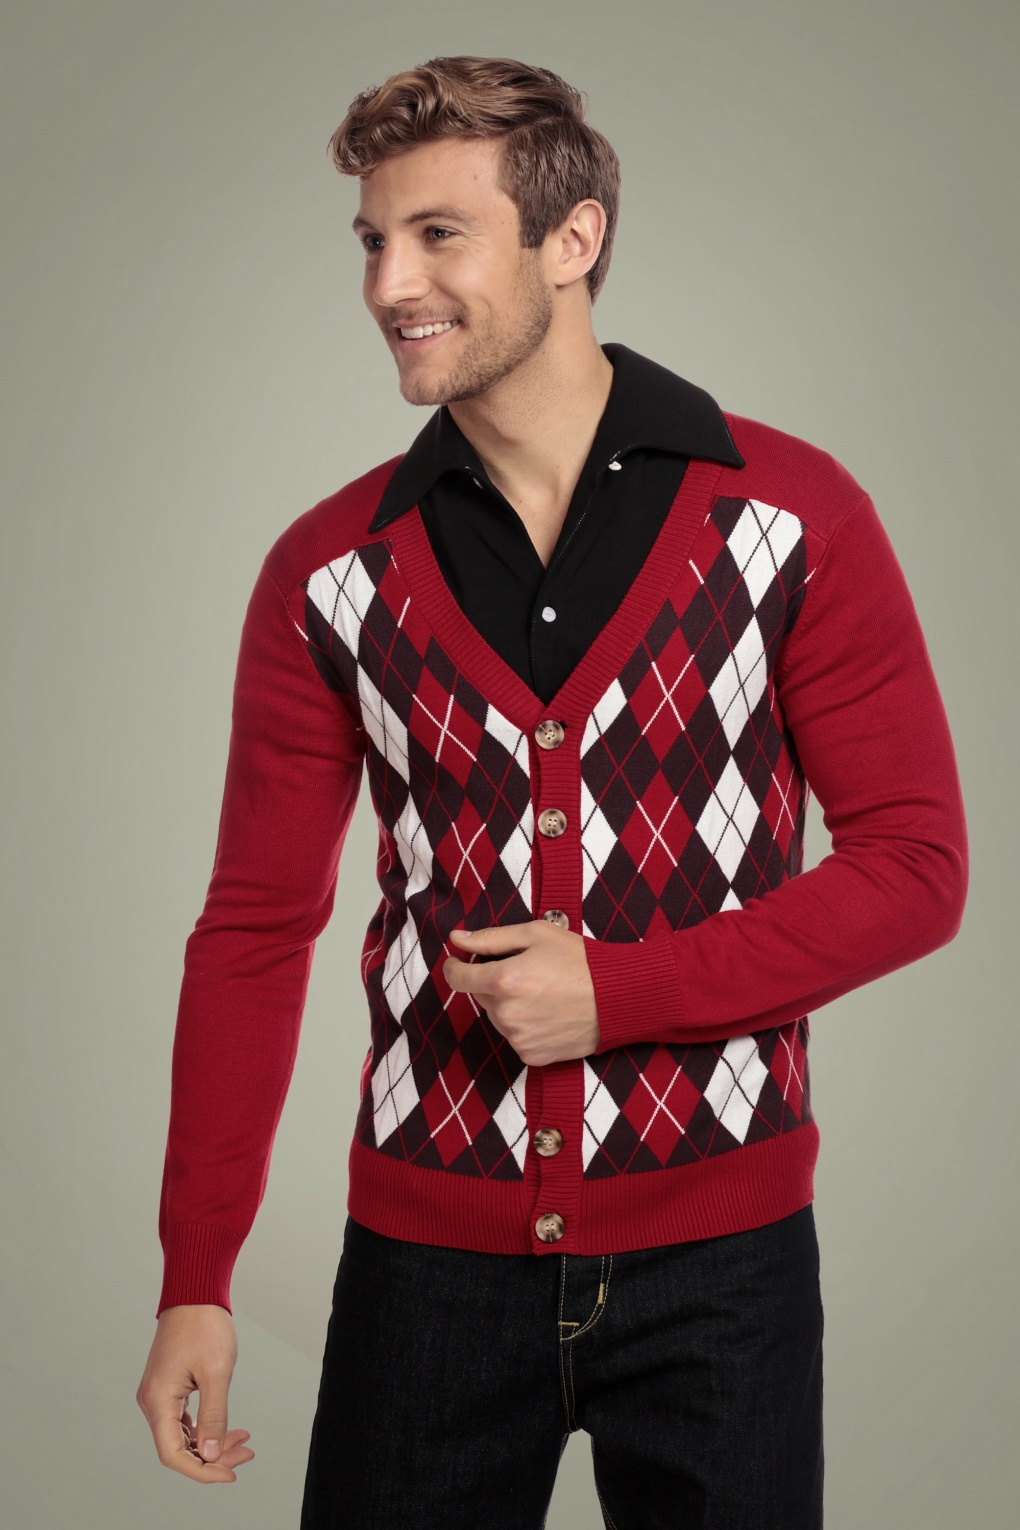 Men's Vintage Sweaters – 1920s to 1960s Retro Jumpers 50s Dave Diamond Cardigan in Red £46.17 AT vintagedancer.com